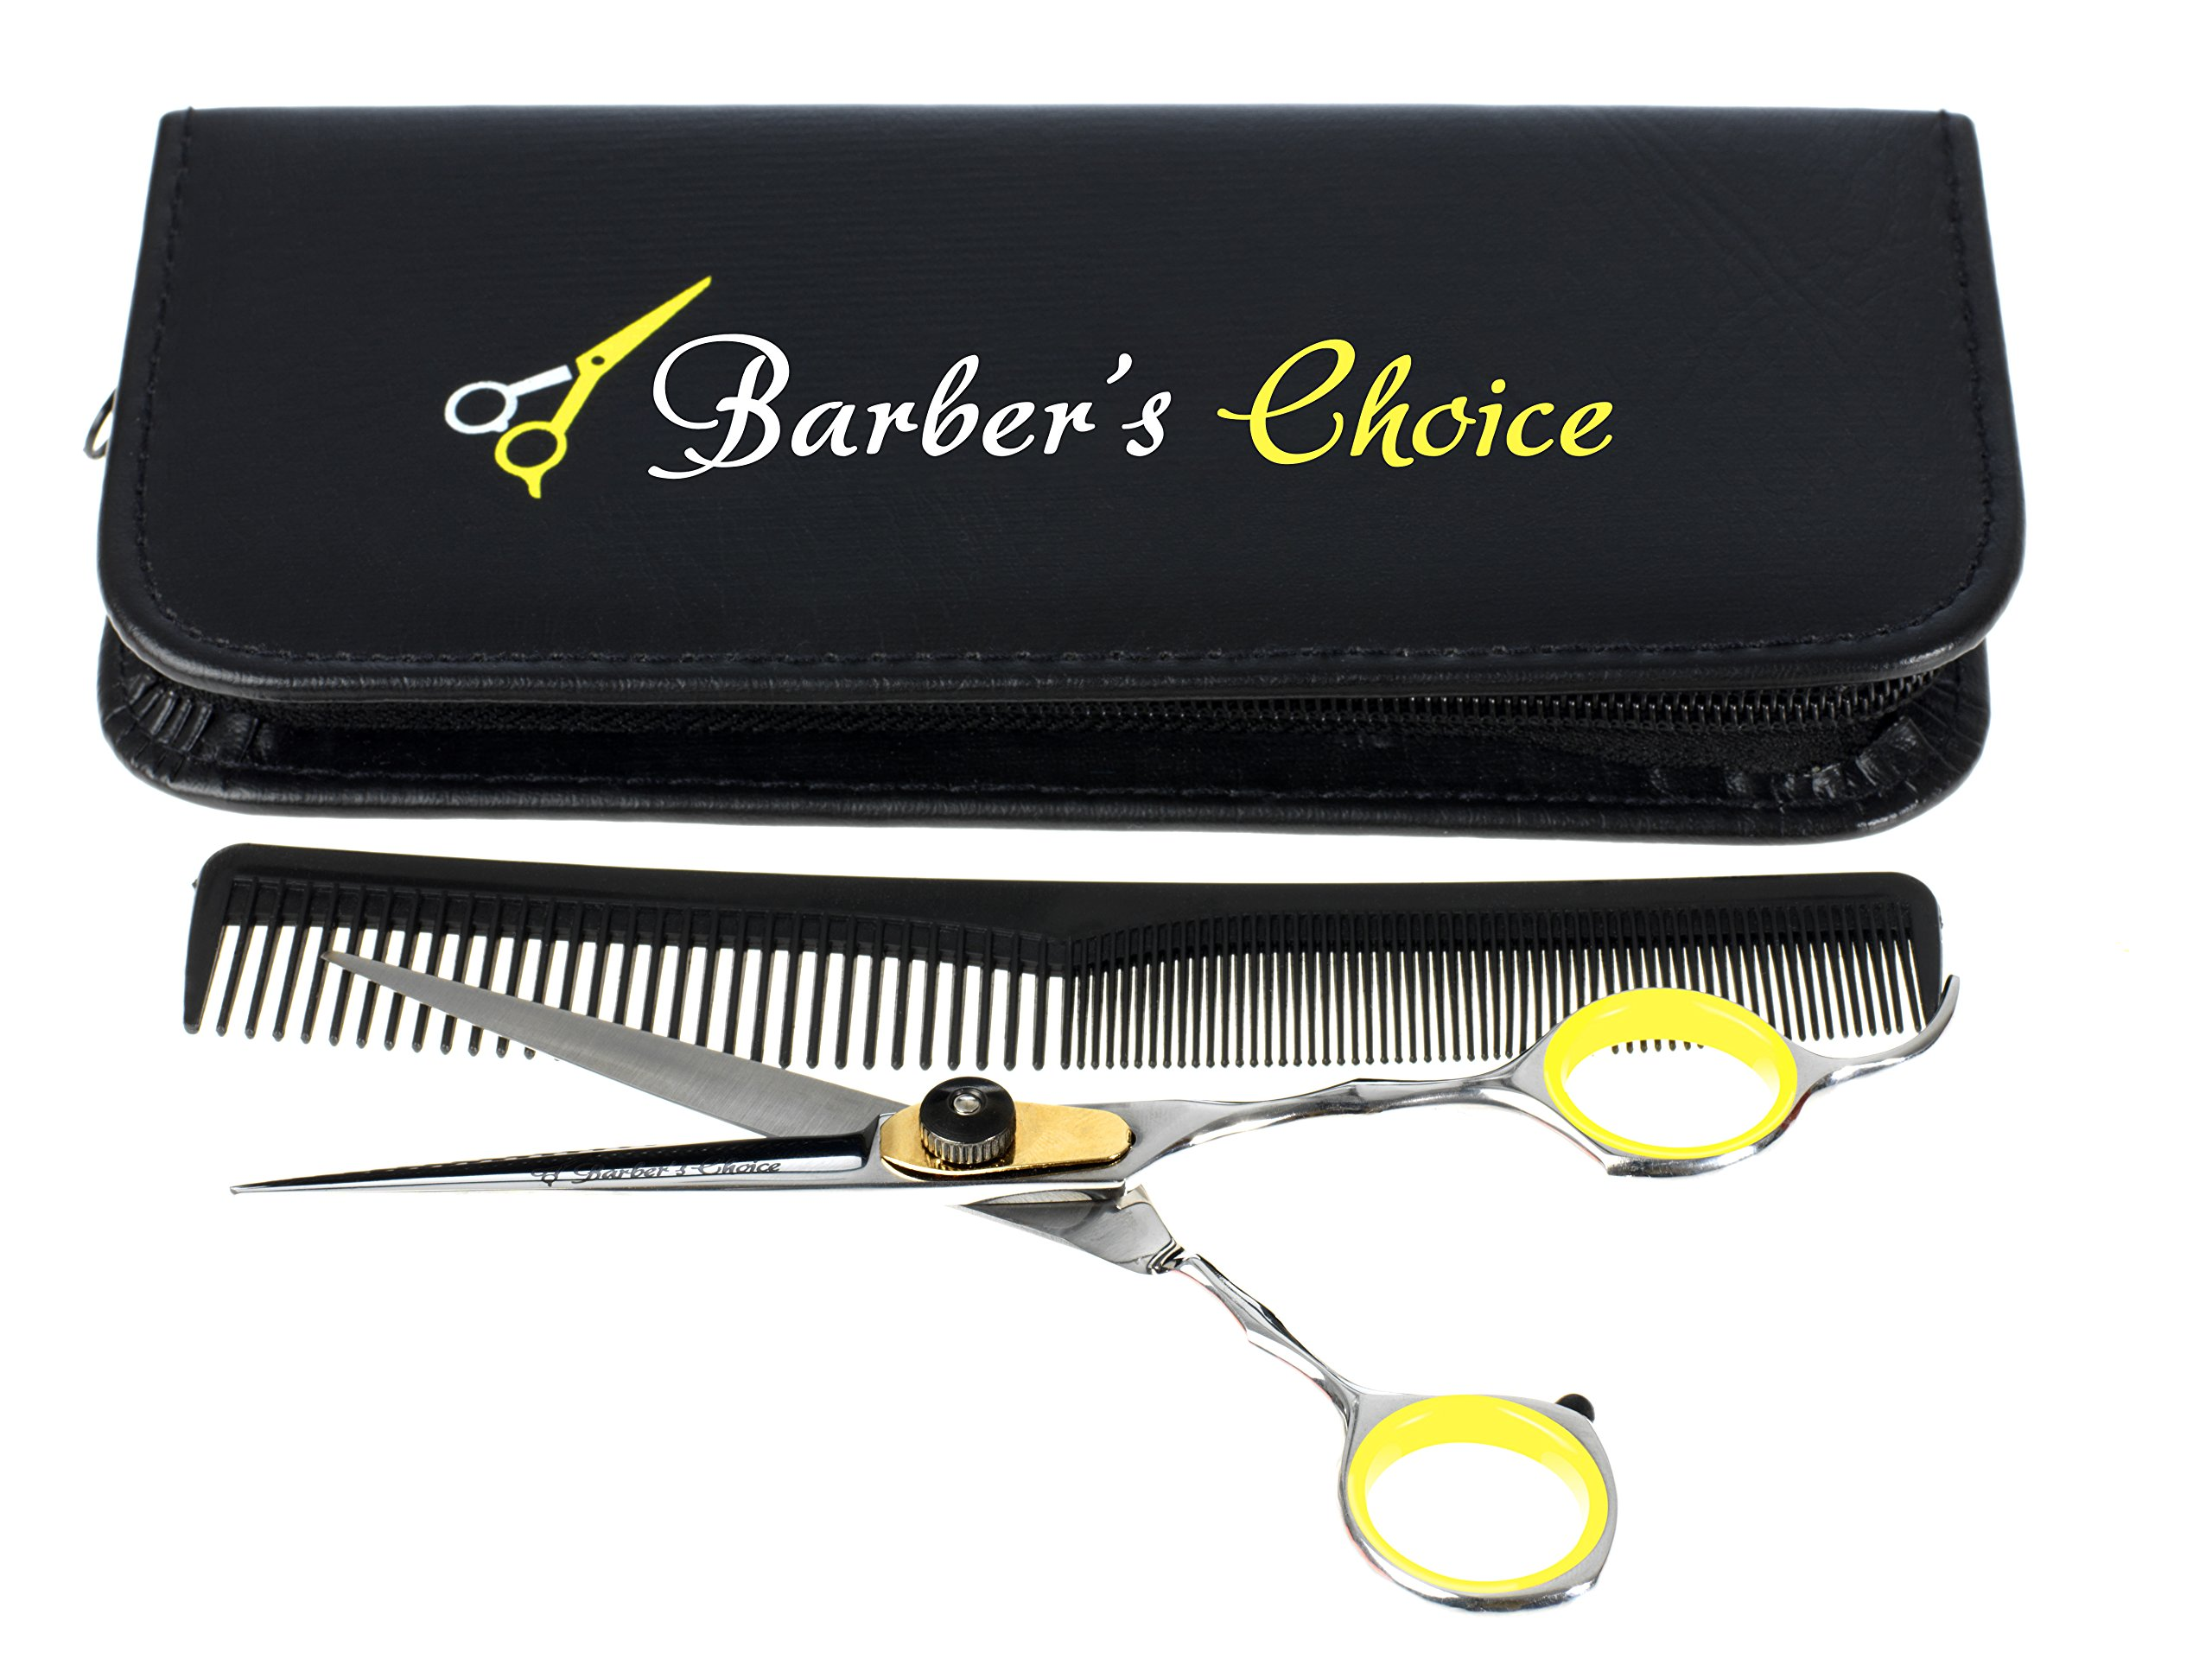 Professional Hair Cutting Barber Scissors/Shears with Comb and Case - 6.5'' Overall Length - Japanese Stainless Steel - Sharp Razor Edge - with Adjustment Tension Screw - by Barber's Choice by Barber's Choice